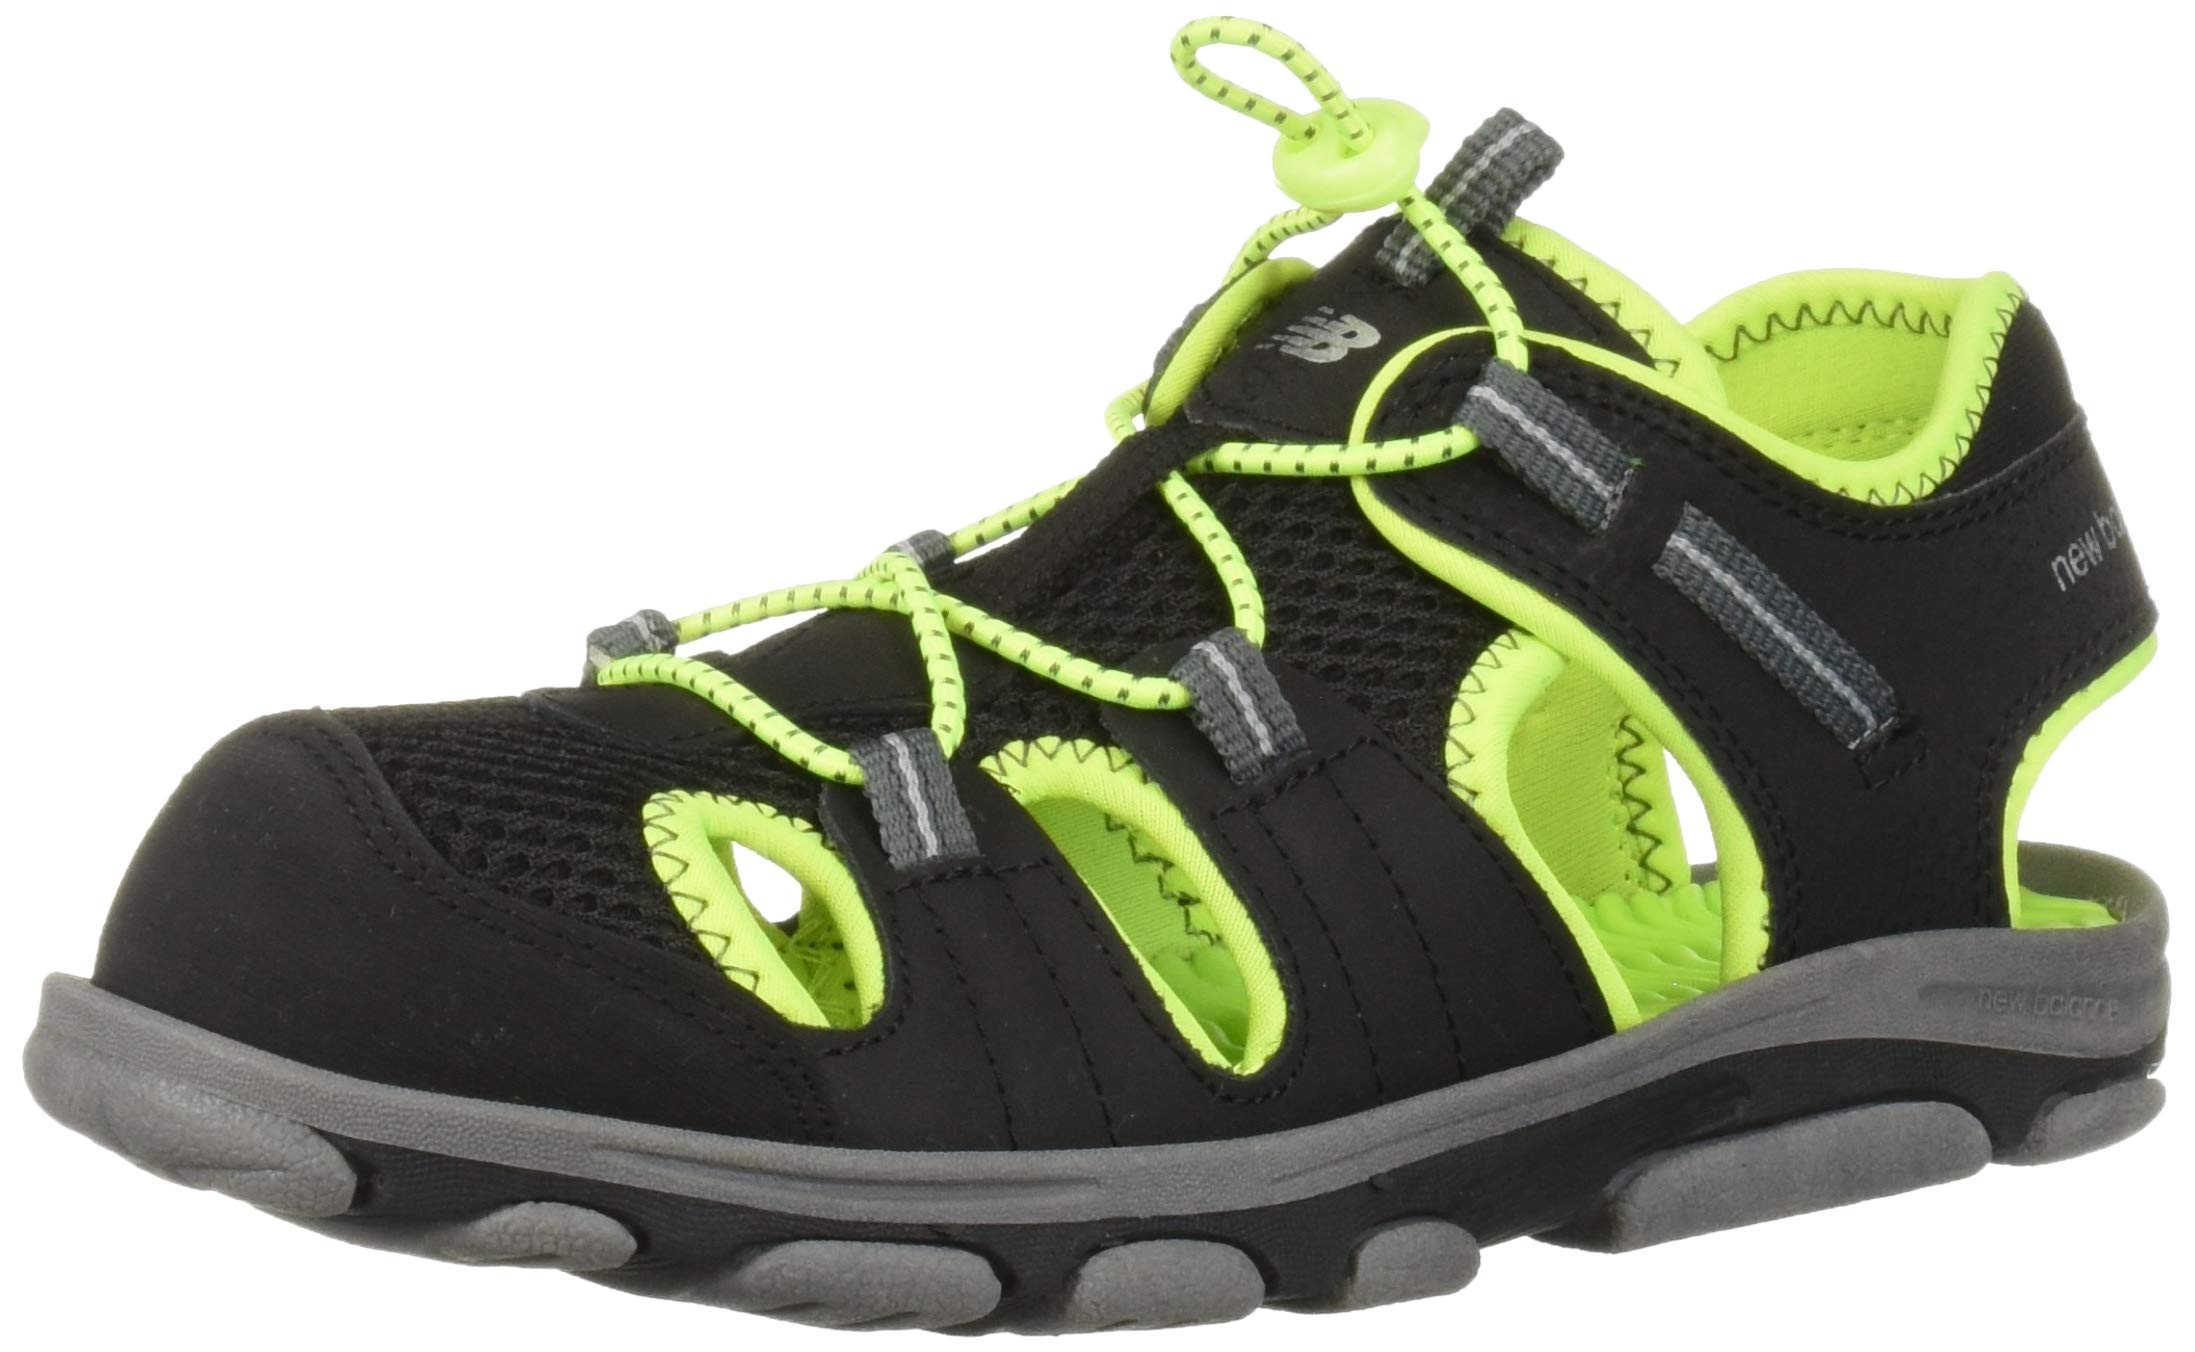 New Balance Kid's Adirondack Sandal Sport, Black/Lime, P3 M US Little